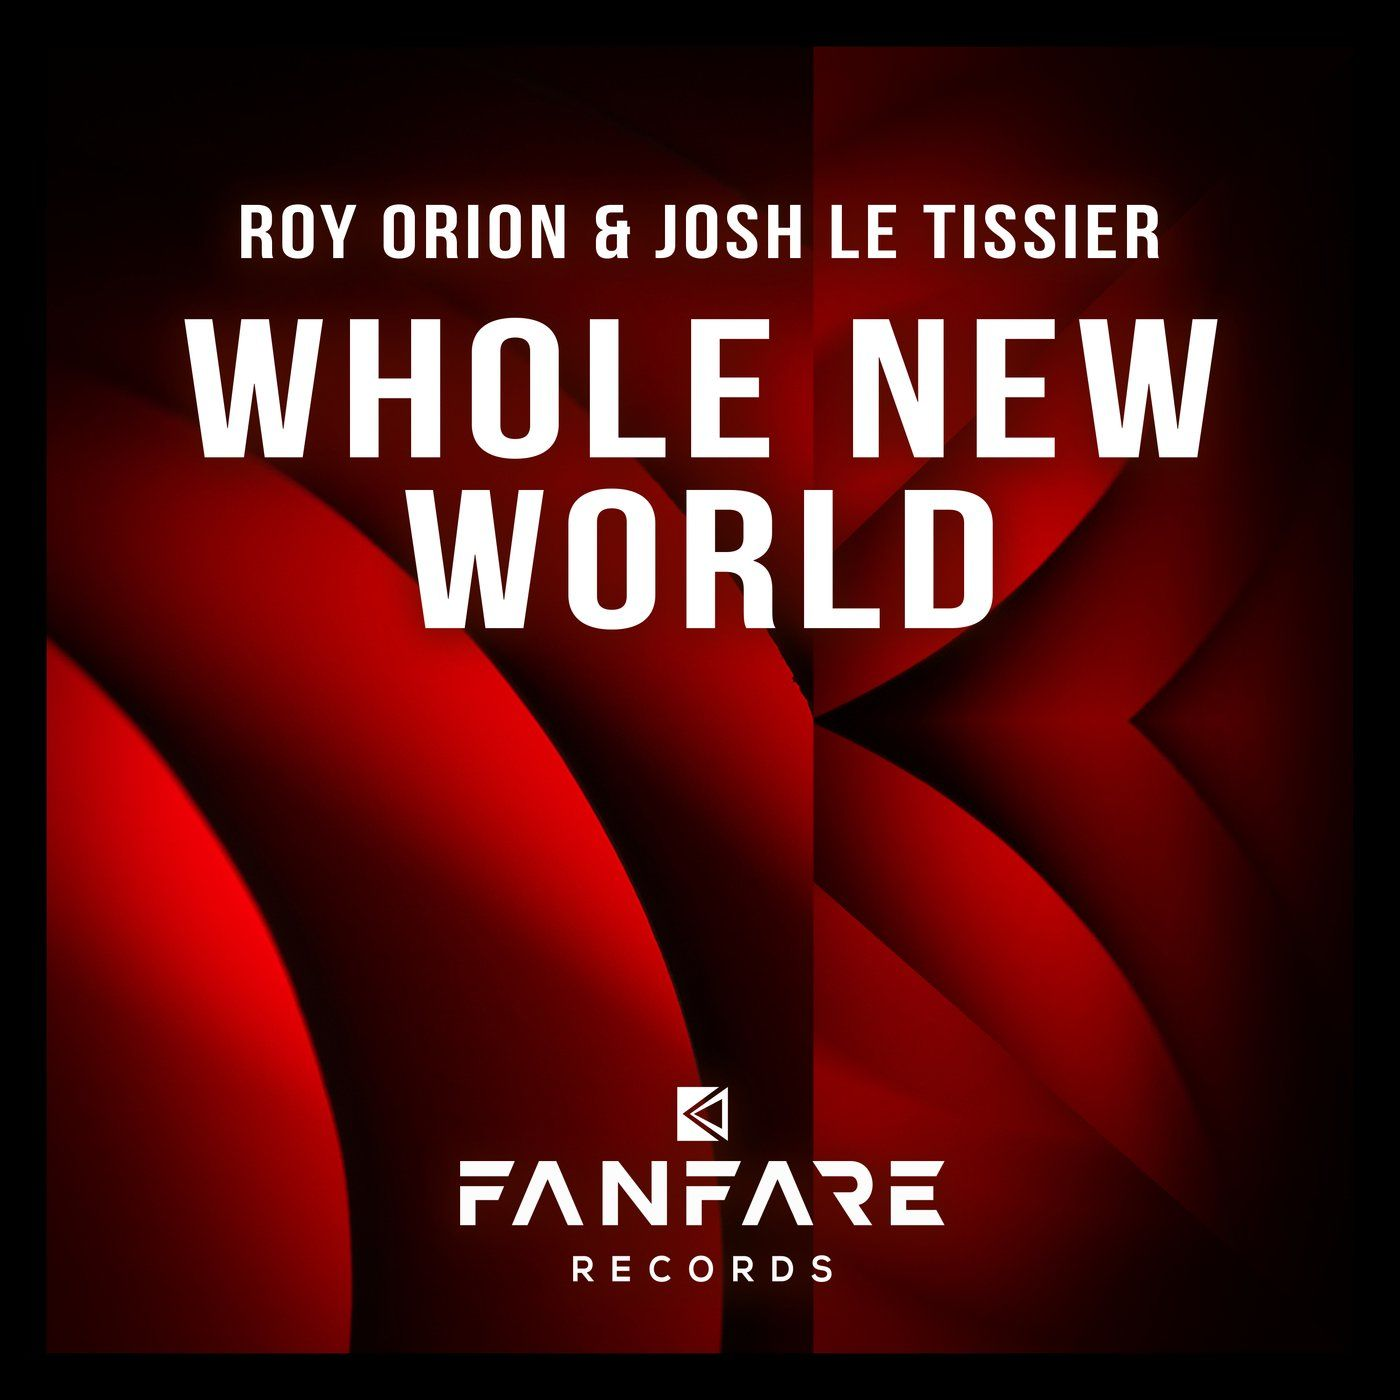 Roy Orion & Josh Le Tissier - Whole New World (Extended Club Mix)